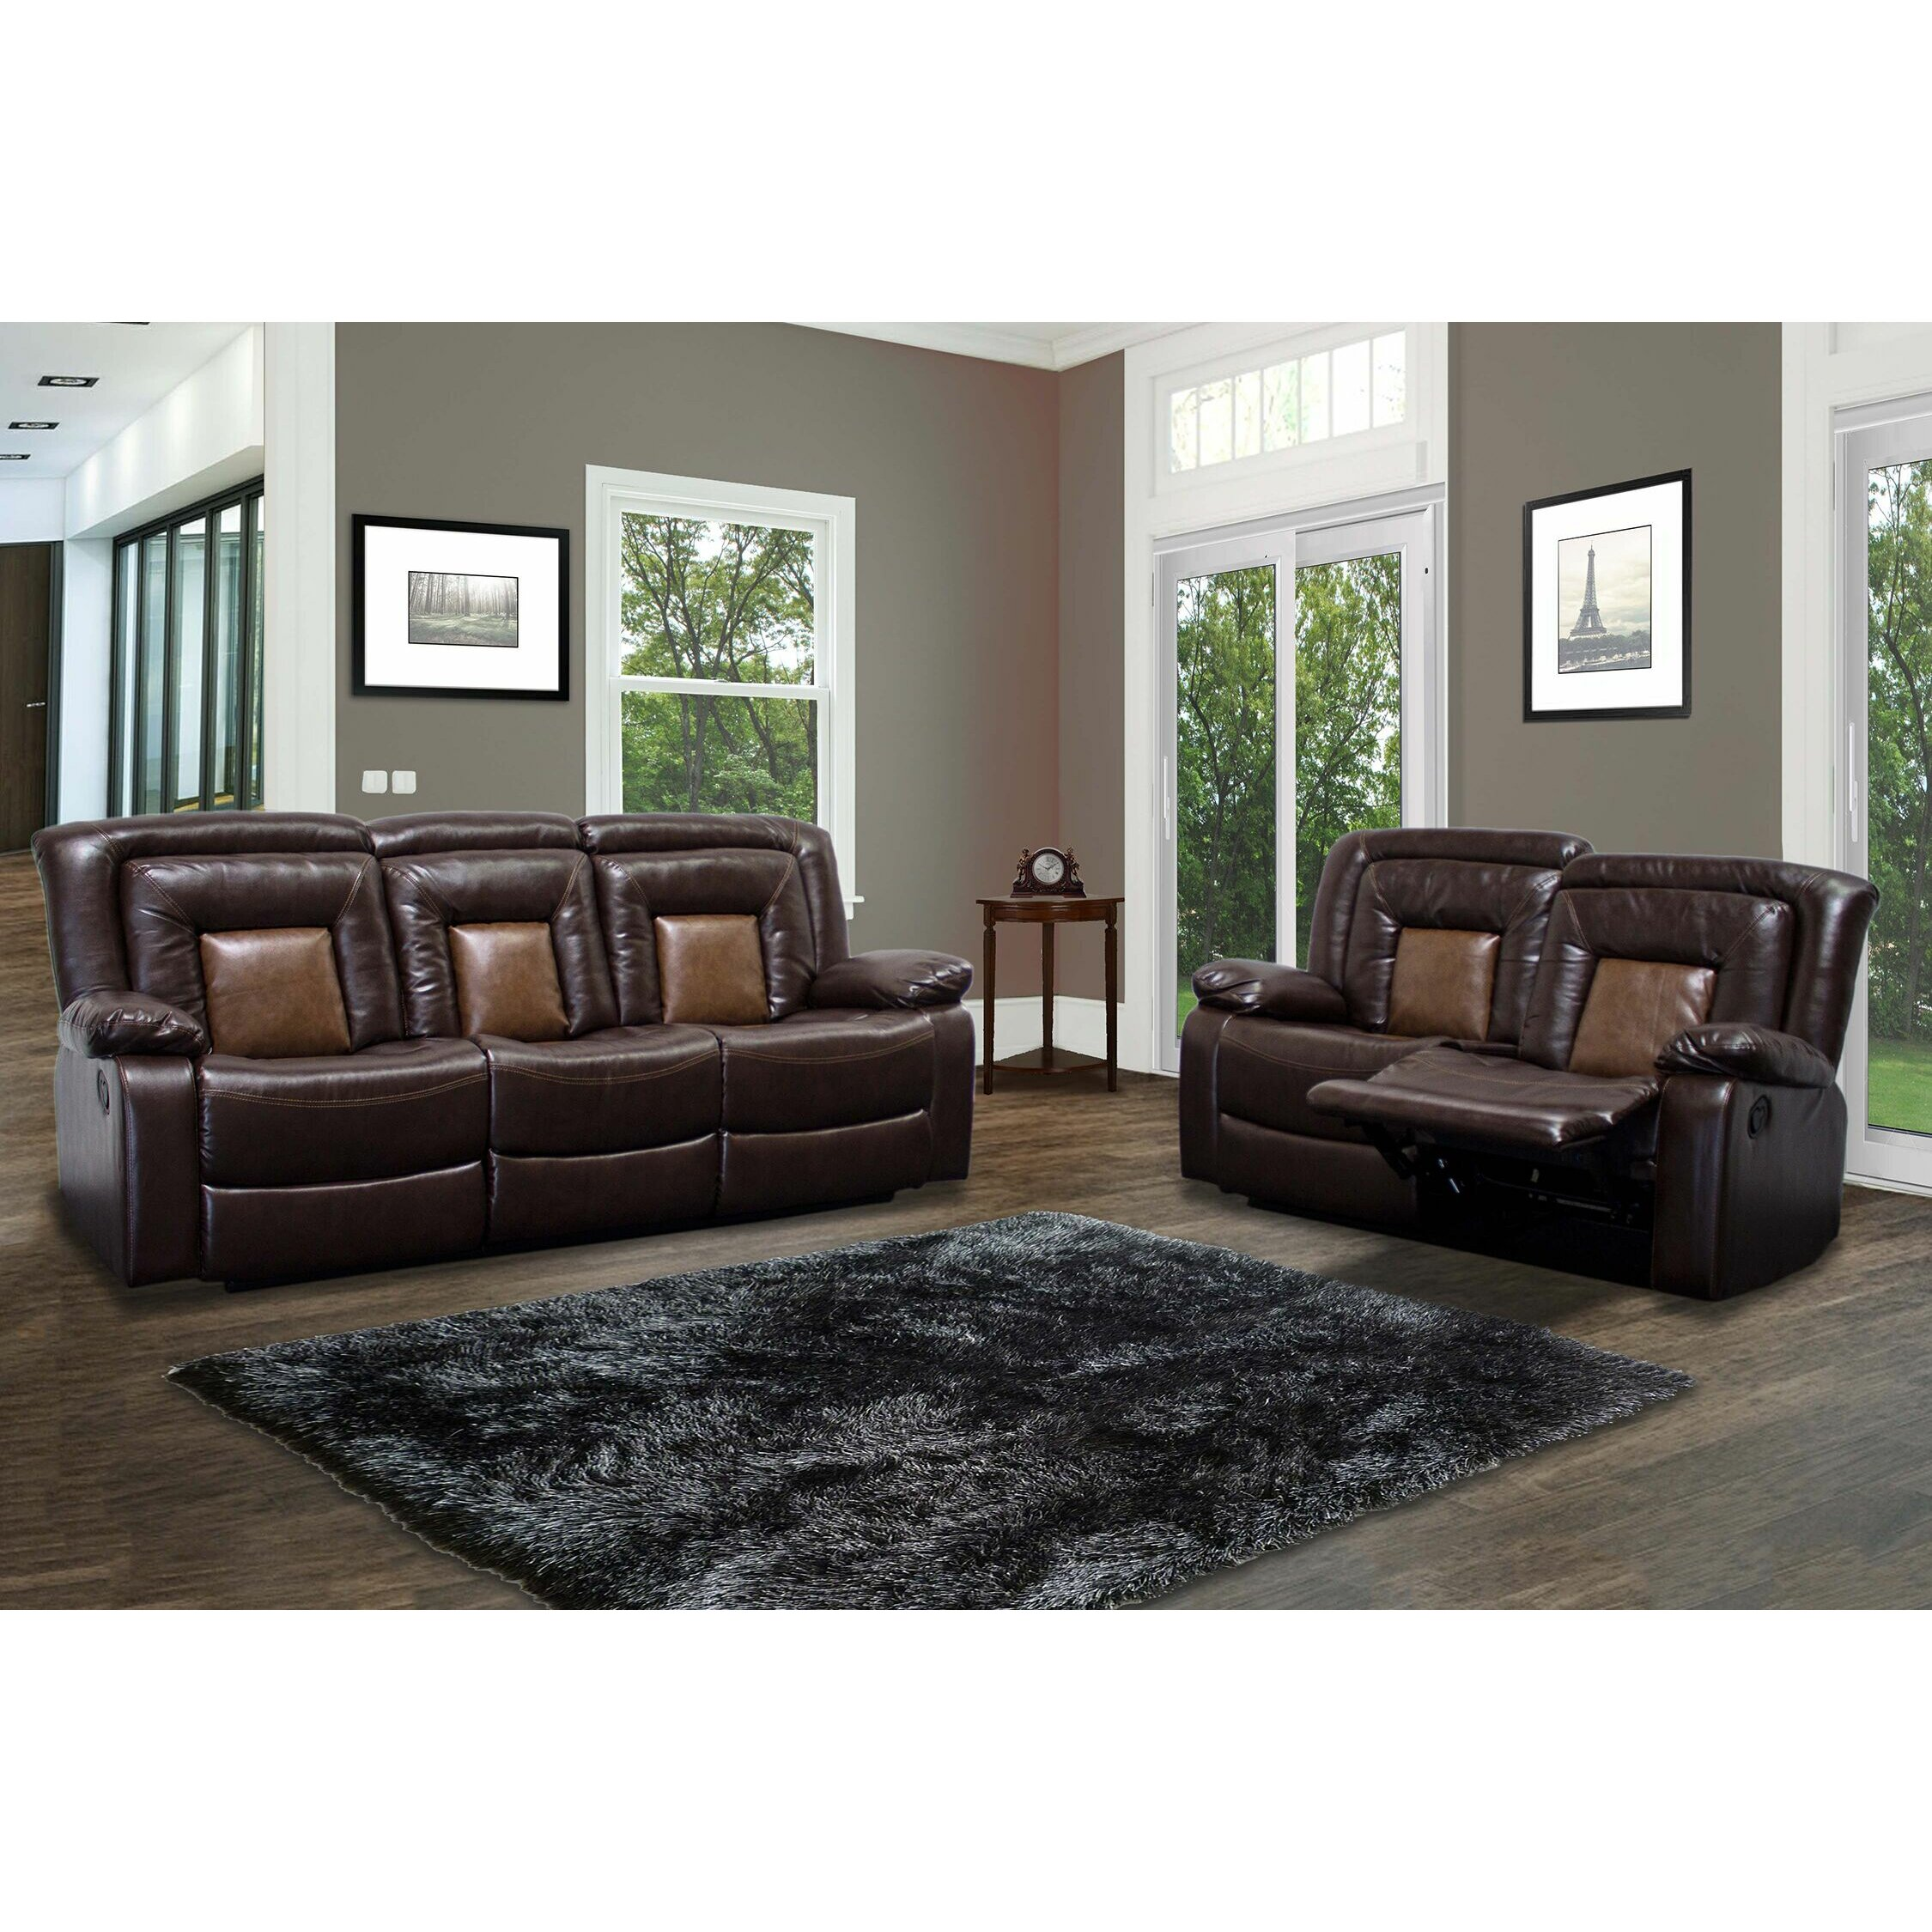 Bestmasterfurniture Sofa And Loveseat Set Reviews Wayfair